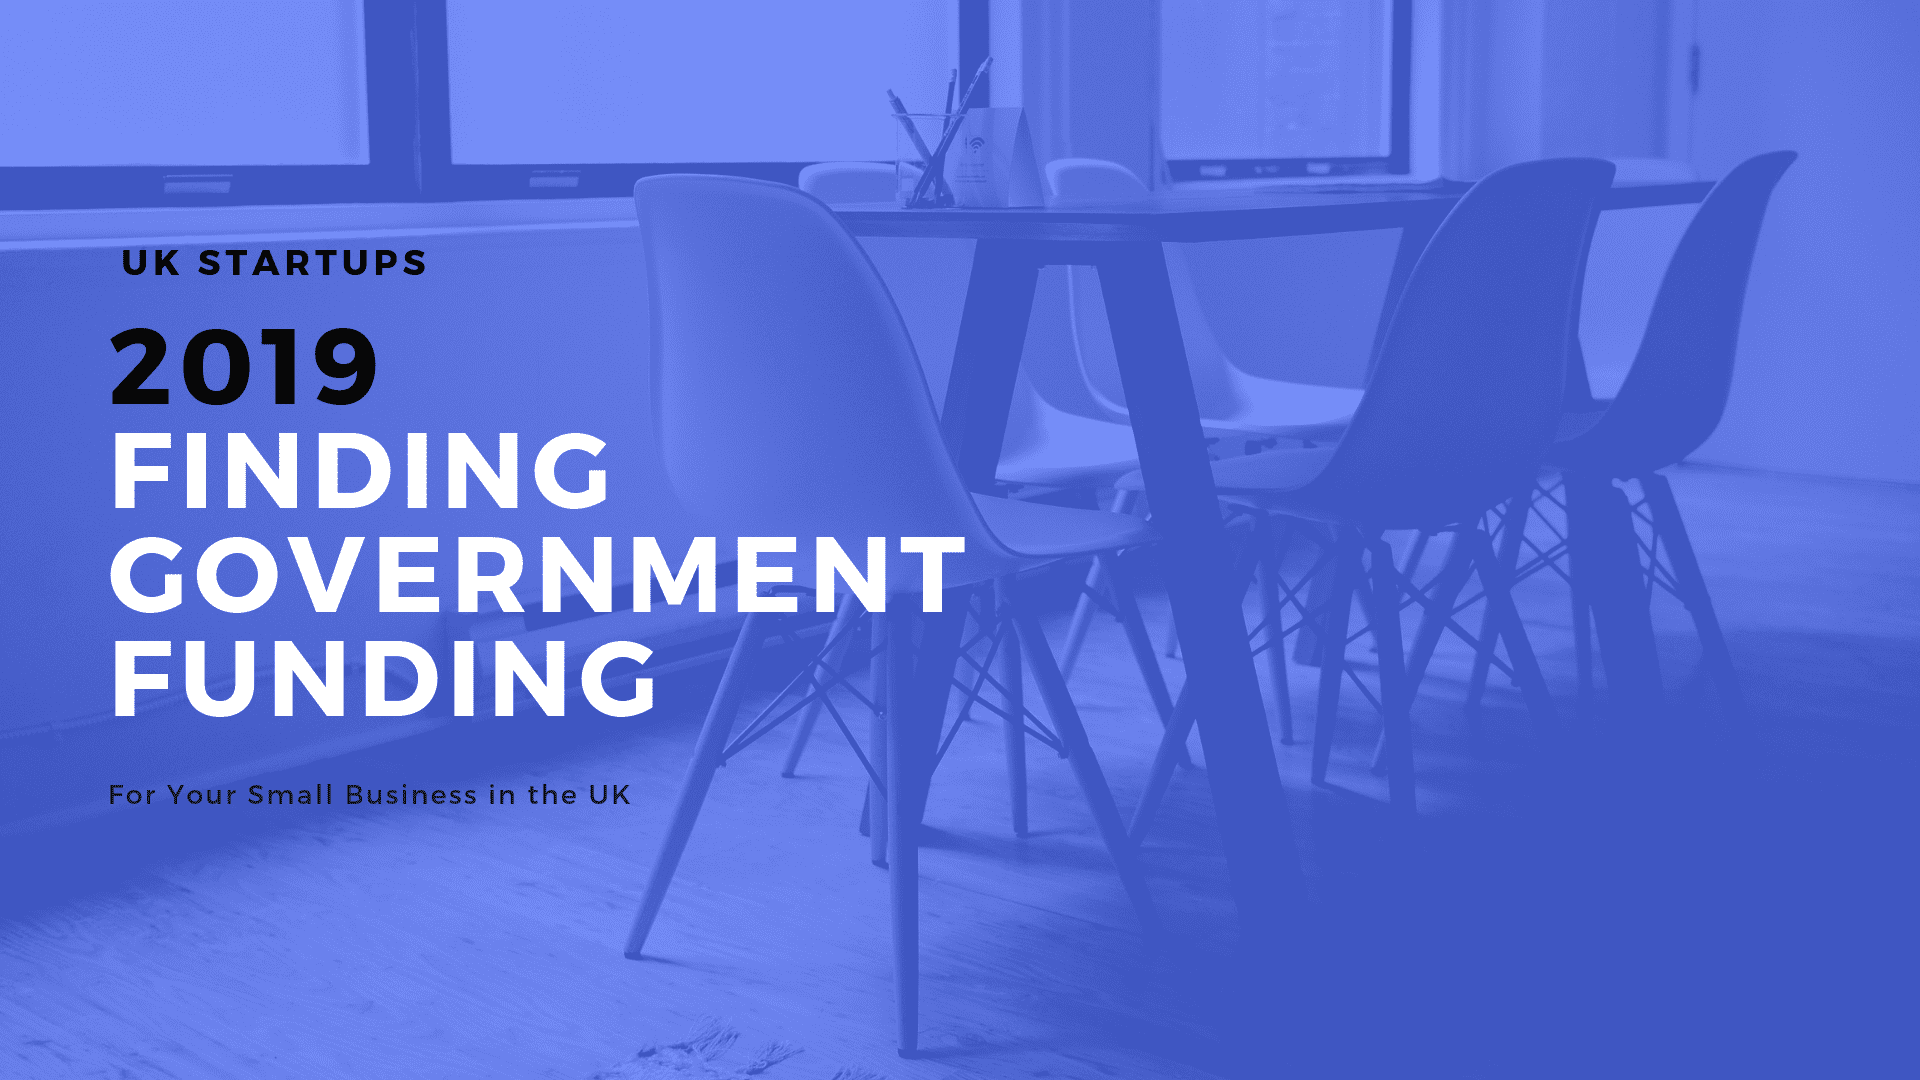 Finding Government Funding in the UK